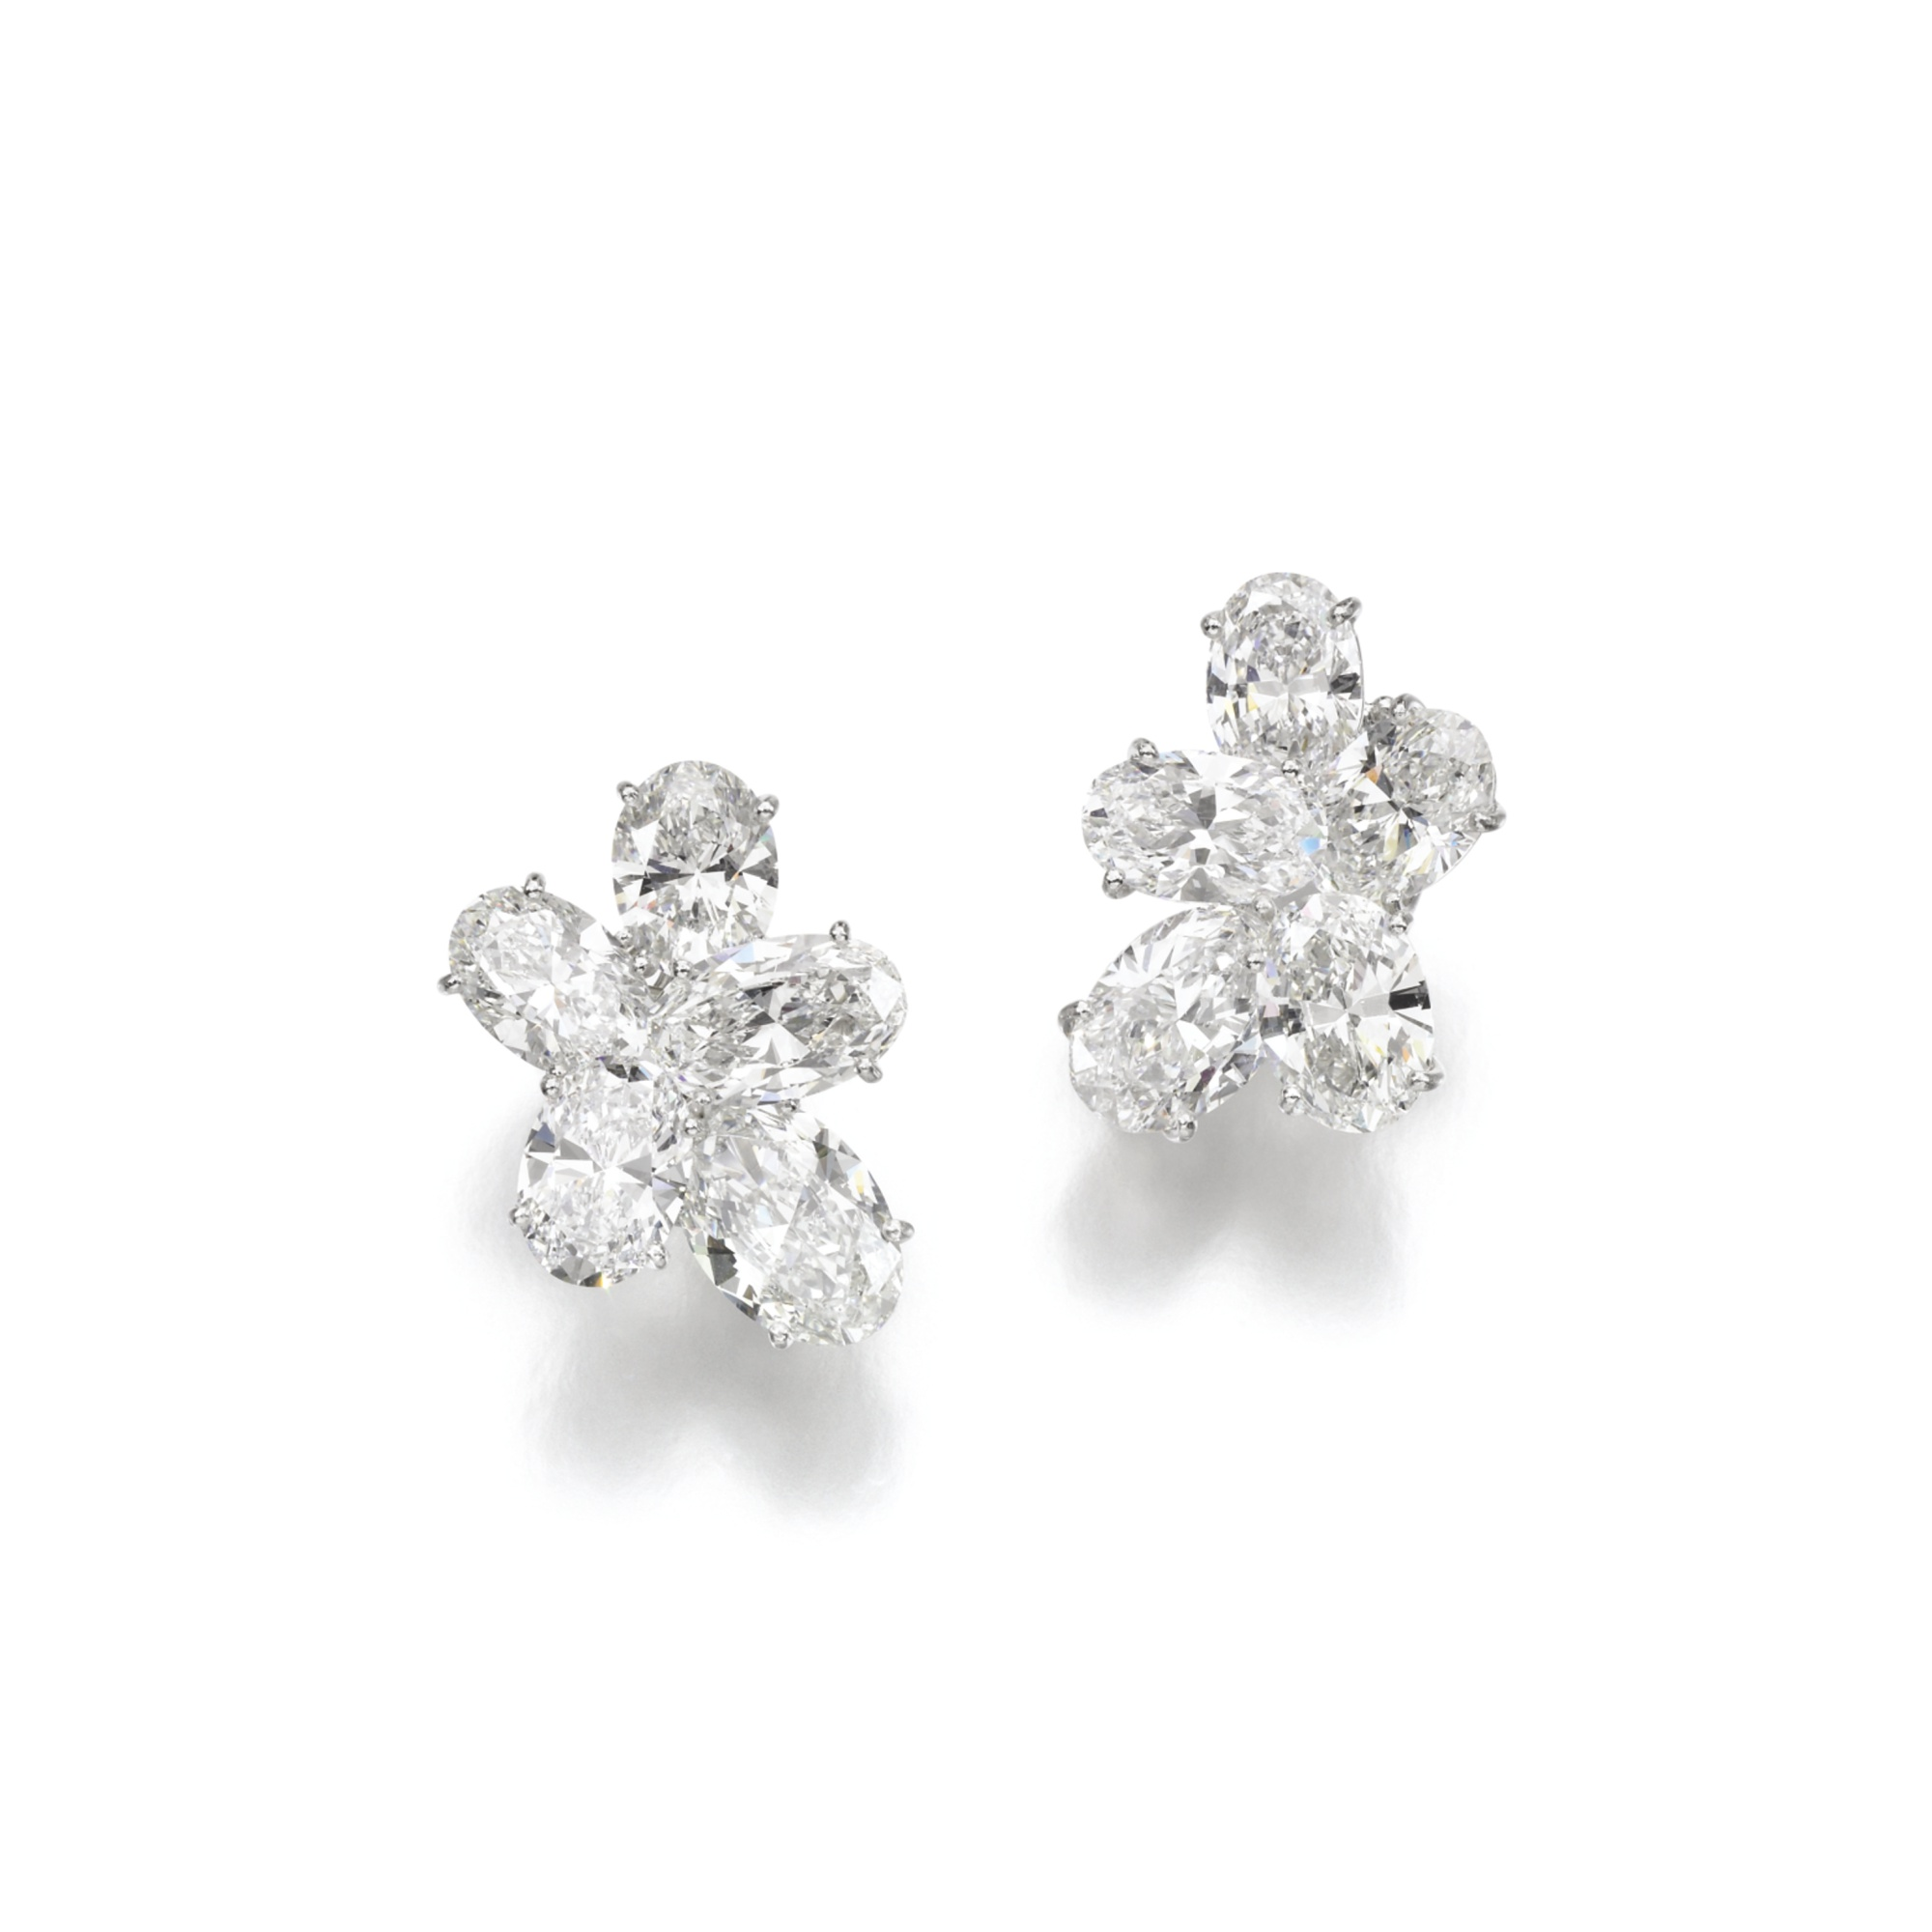 Pair of attractive diamond ear clips. Diamonds range from 2.01 to 3.08 carats.Accompanied by ten photocopies of GIA reports, stating that the diamonds ranging from 2.01 to 3.08 carats, are D to F Colour, Internally Flawless to VS2 Clarity.